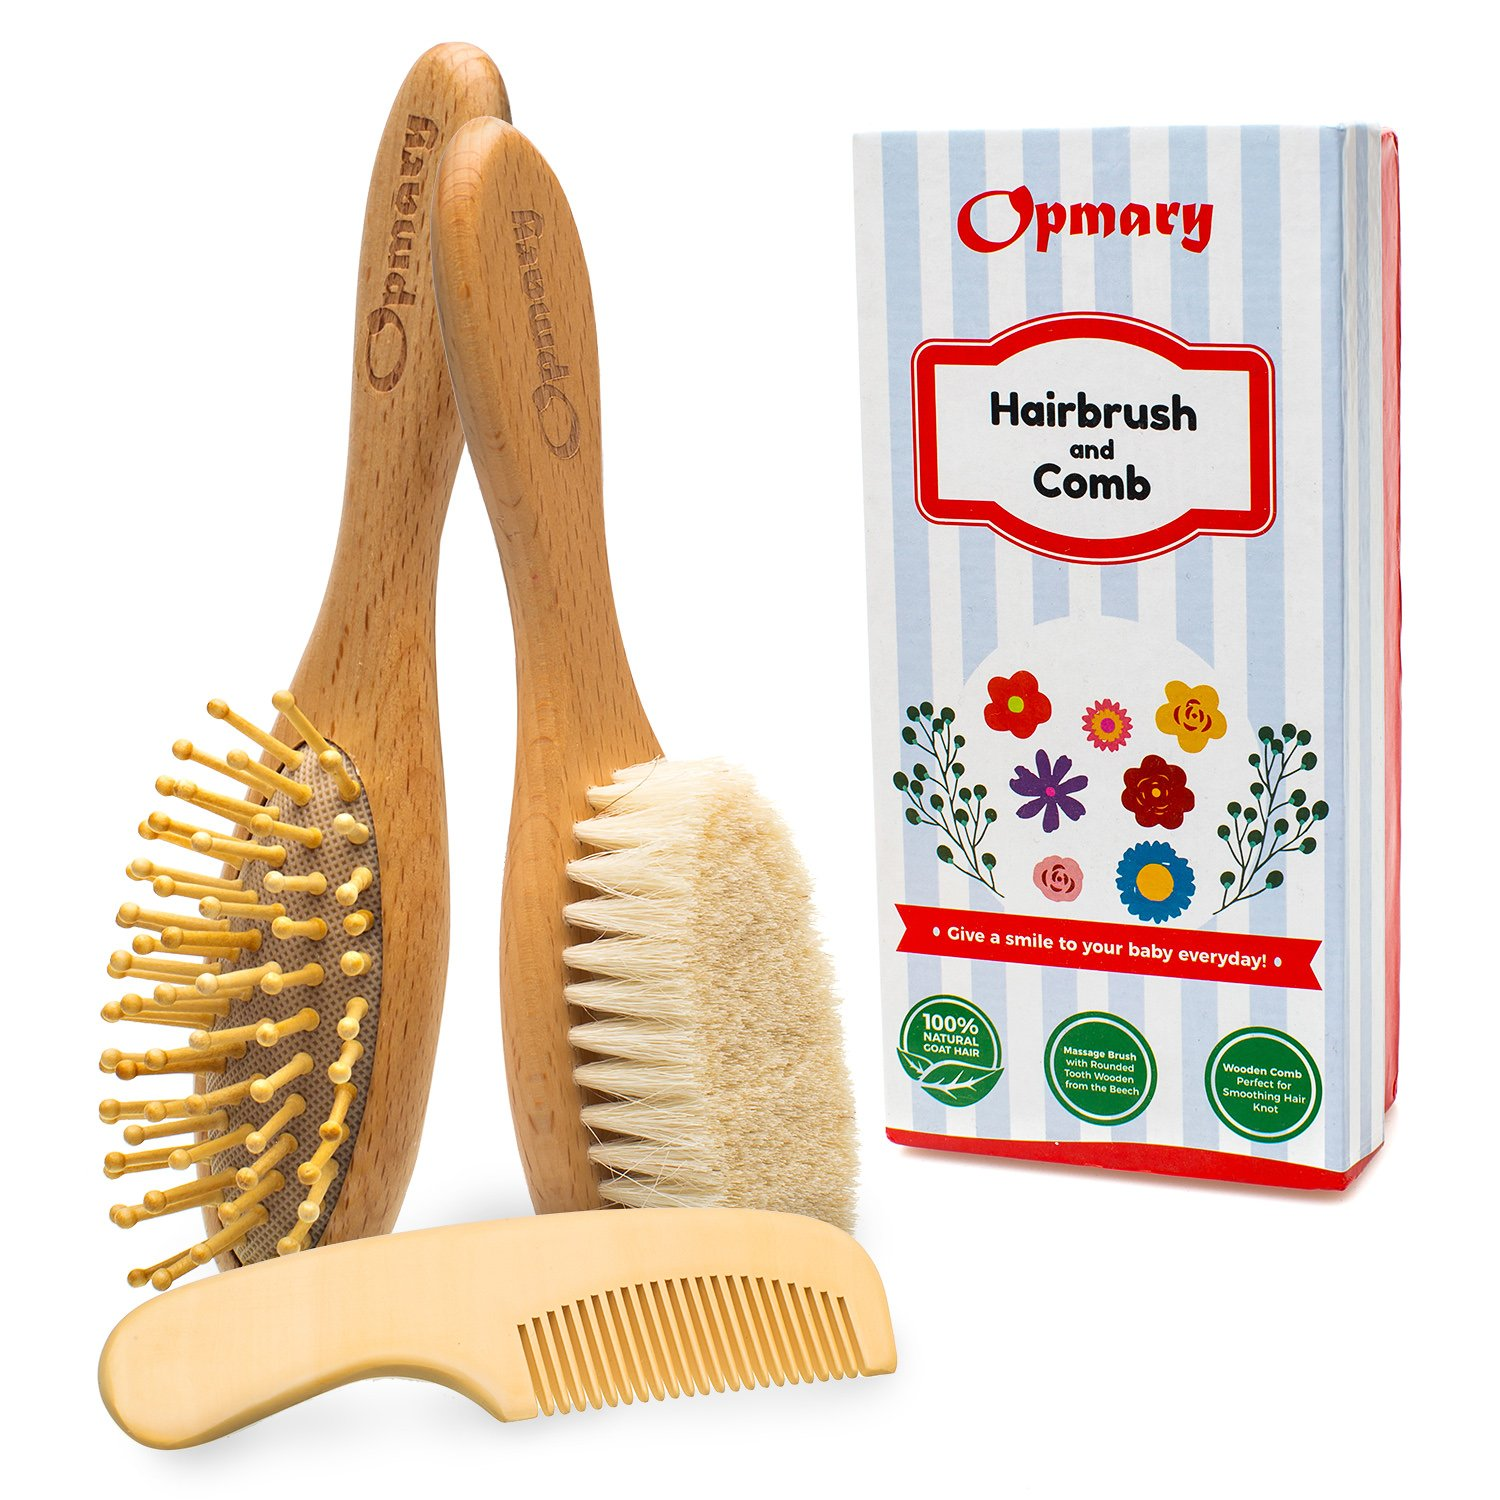 Unisex Baby Hair Brush Set with Natural Goat Bristles | Soothing Cradle Cap Brush + Wooden Bristles Massage Brush & Comb for Newborns and Toddlers